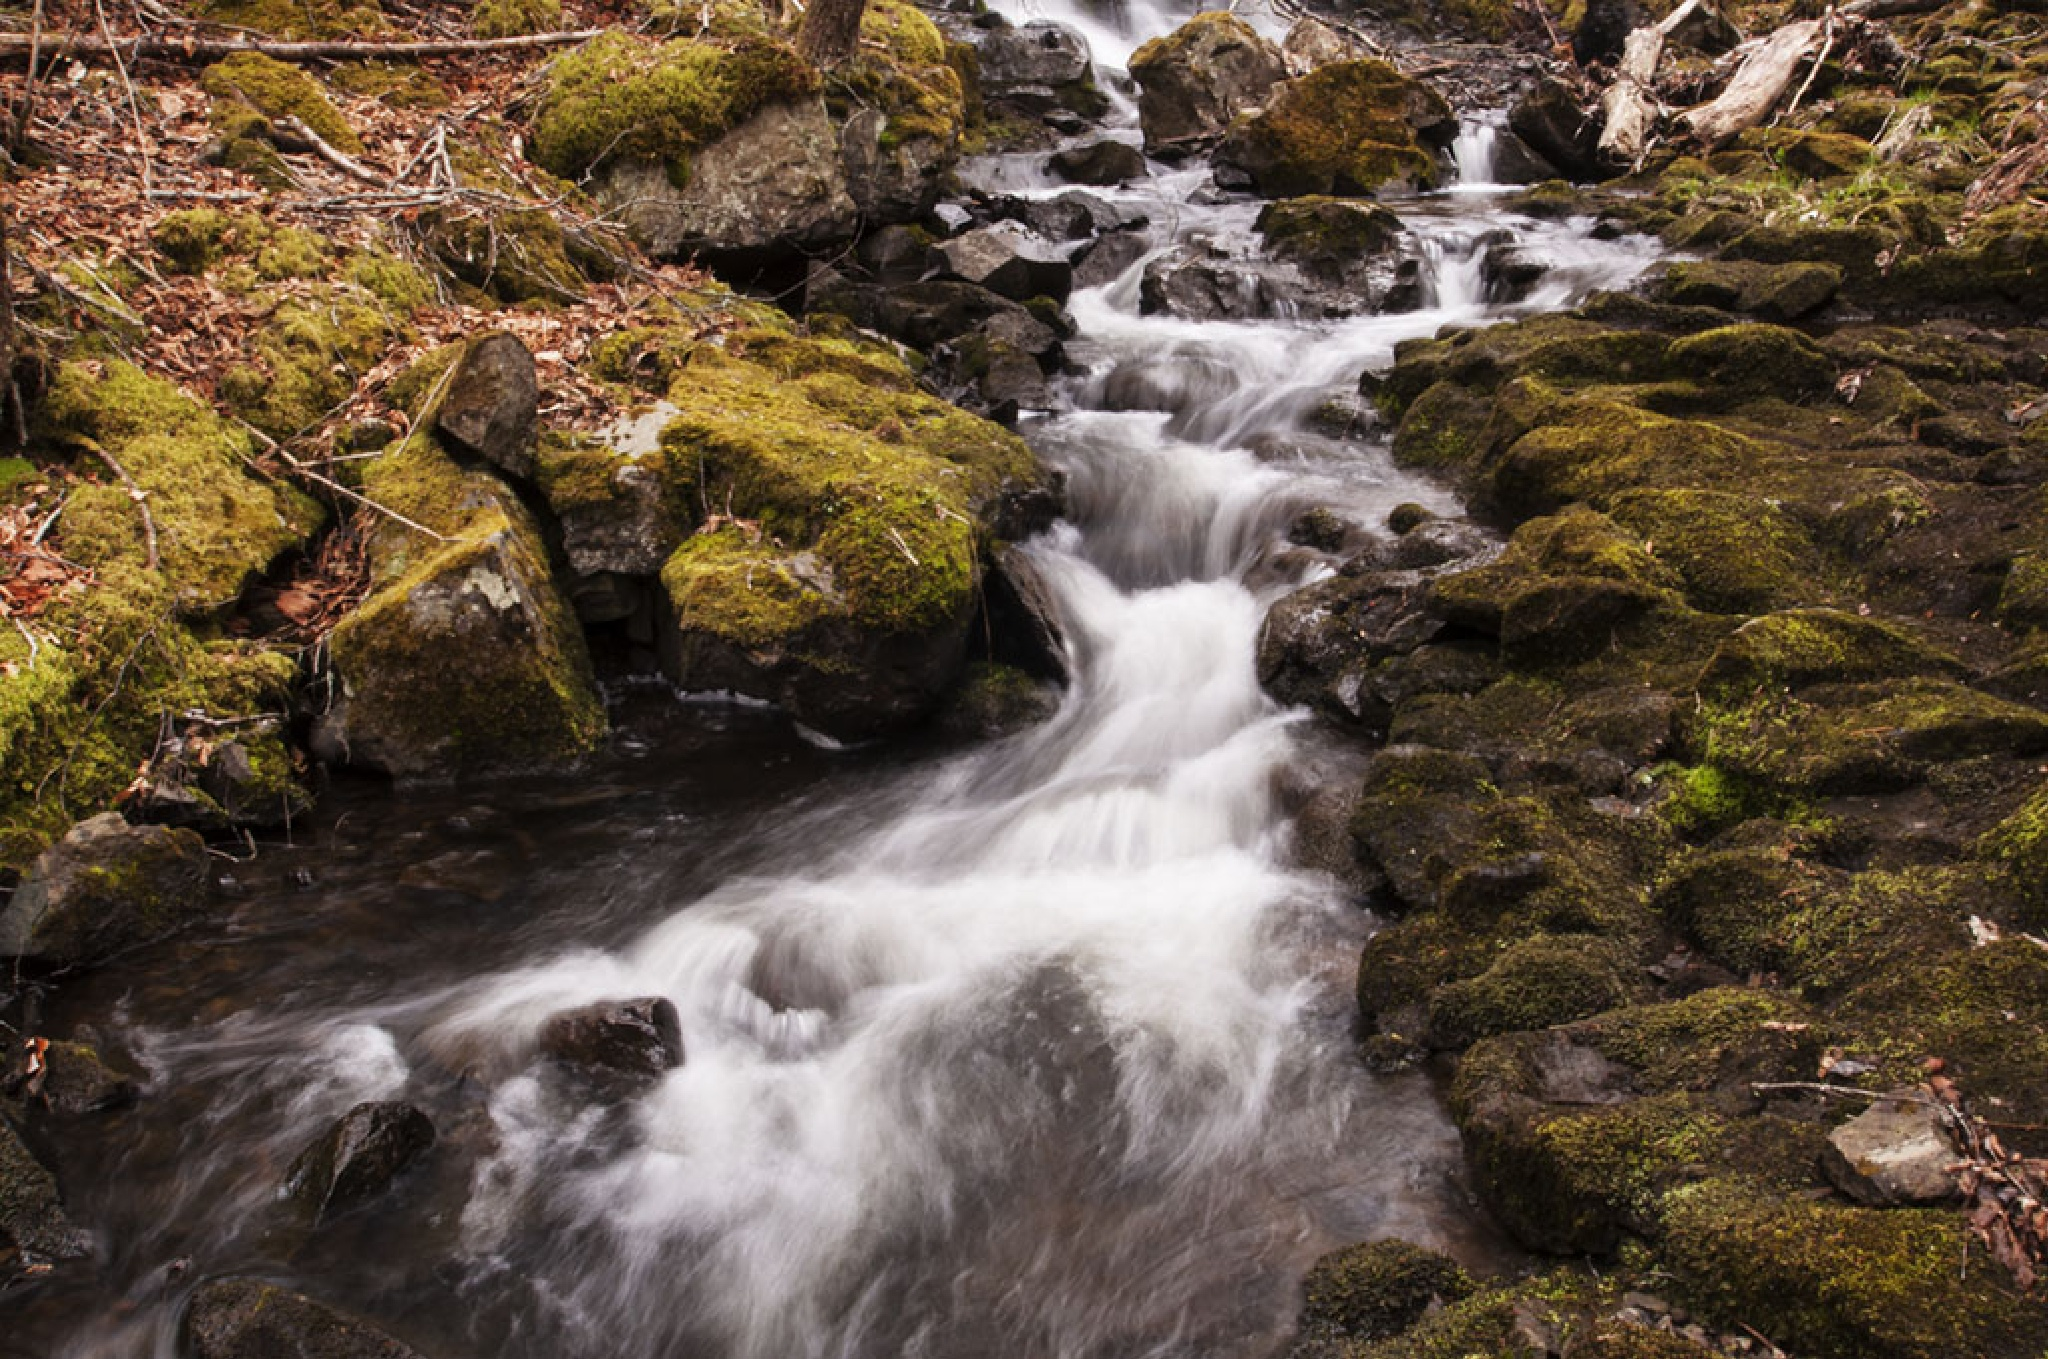 Flowing Through the Moss by Wayne L. Talbot